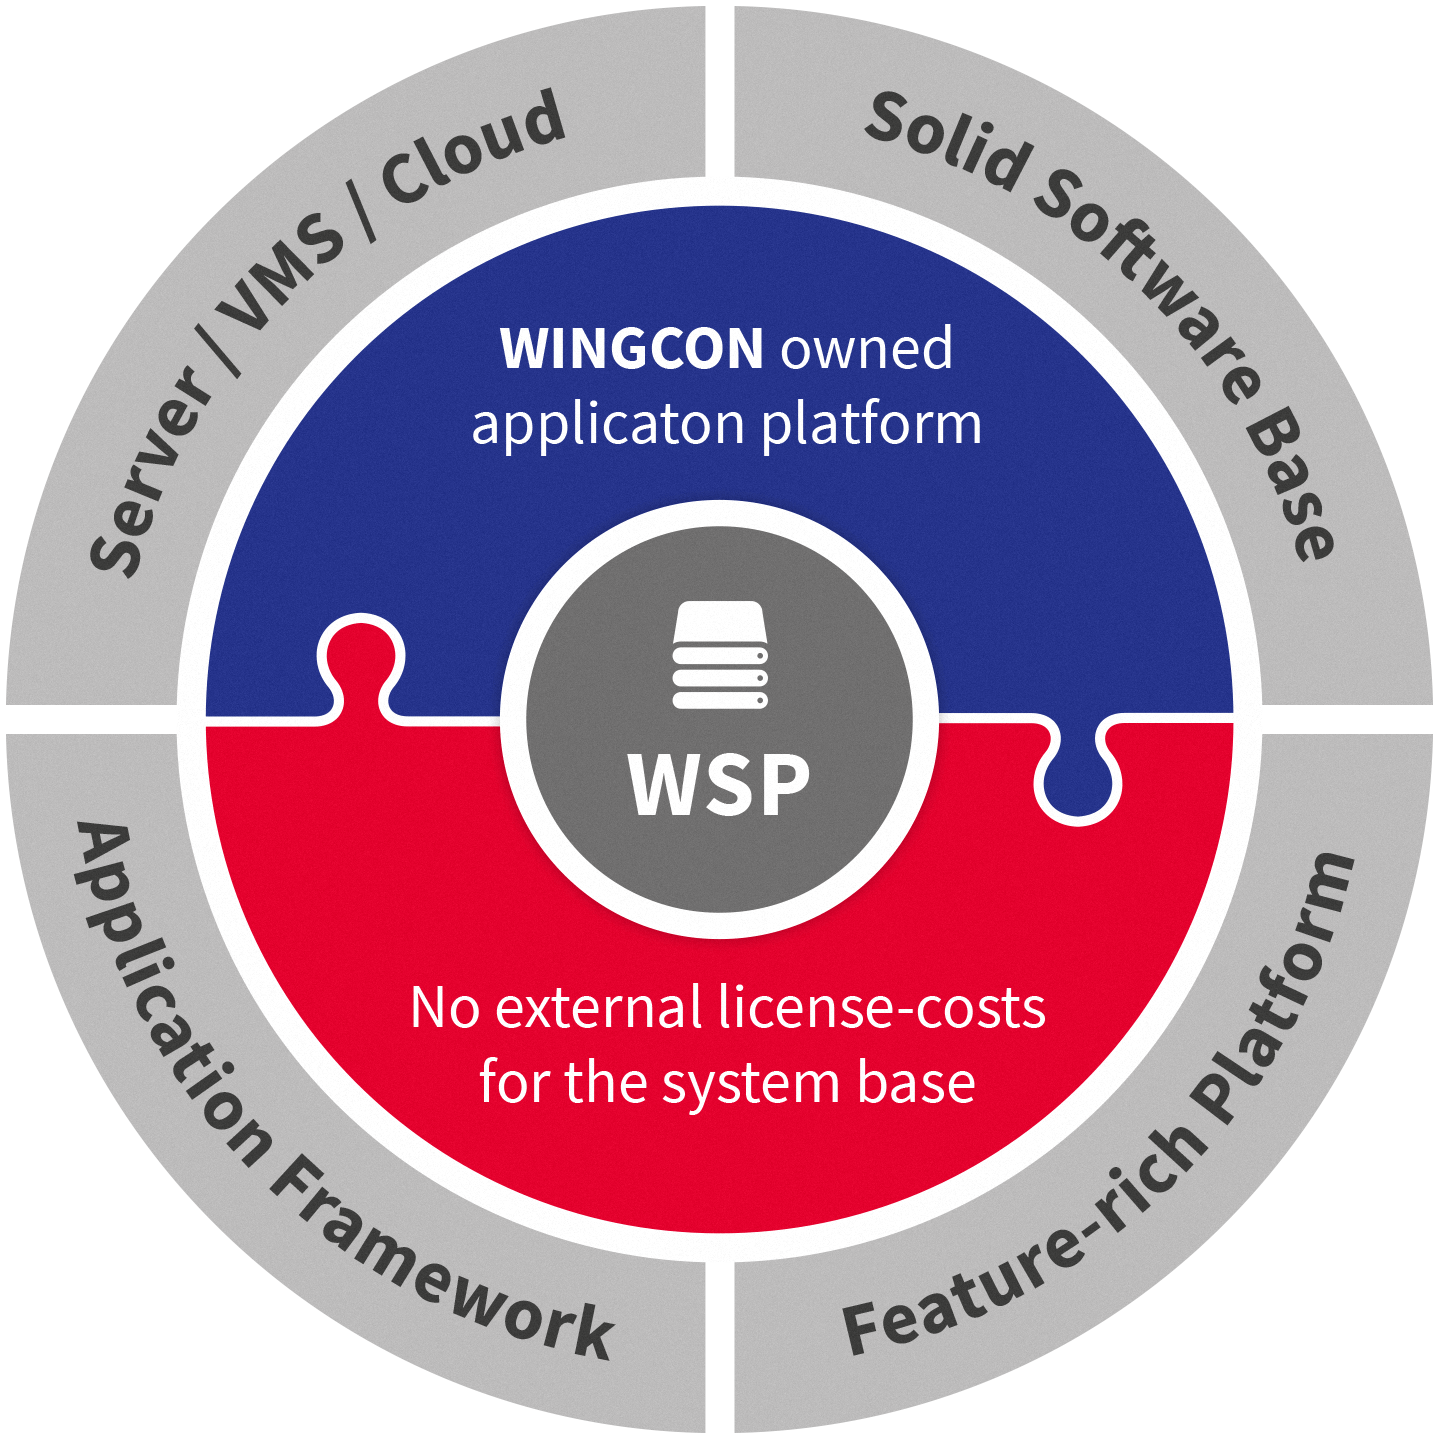 wingcon wsp model